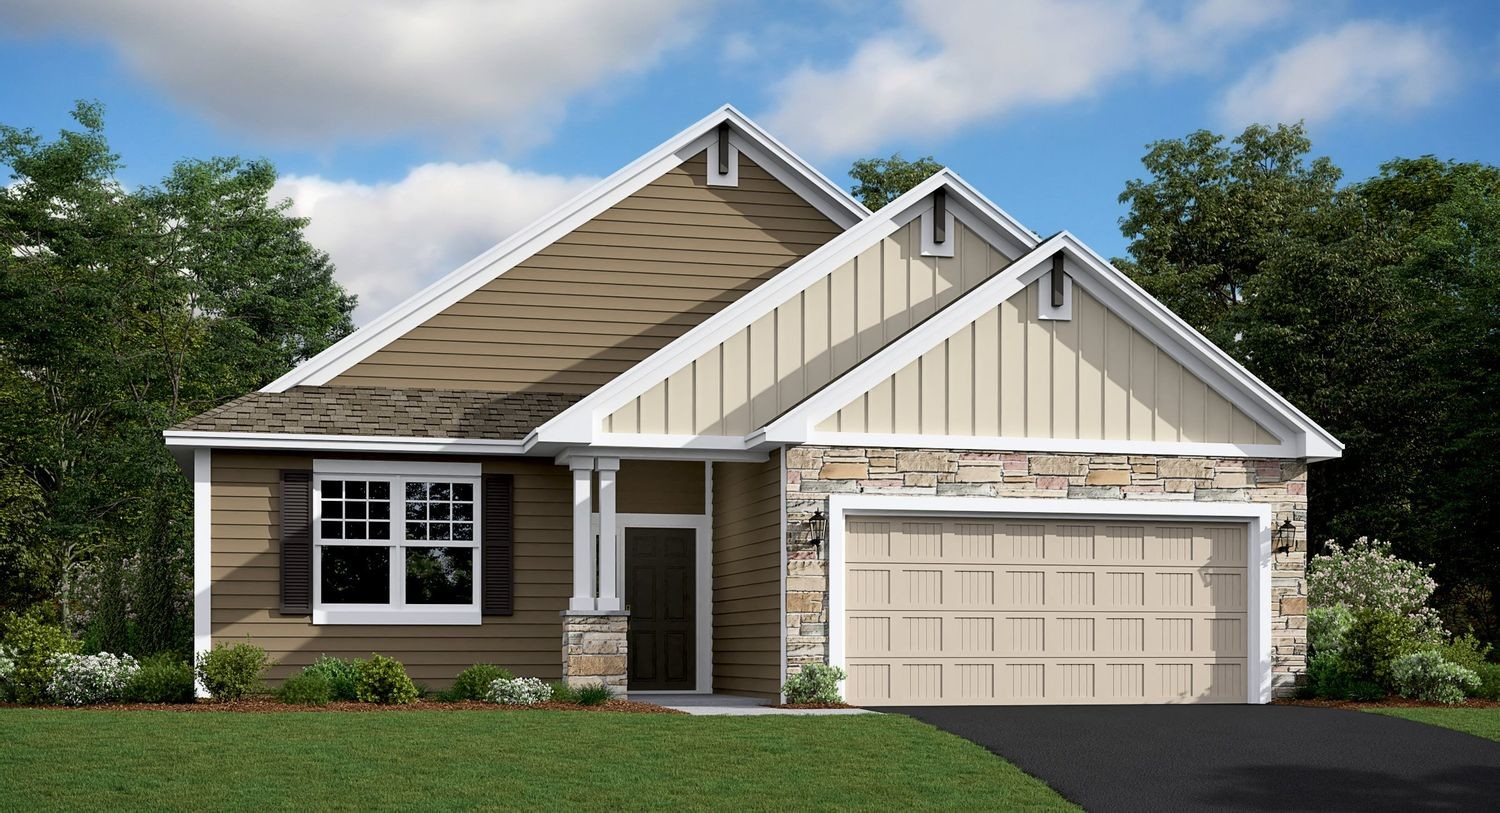 Ready To Build Home In Watermark - Discovery Collection Community